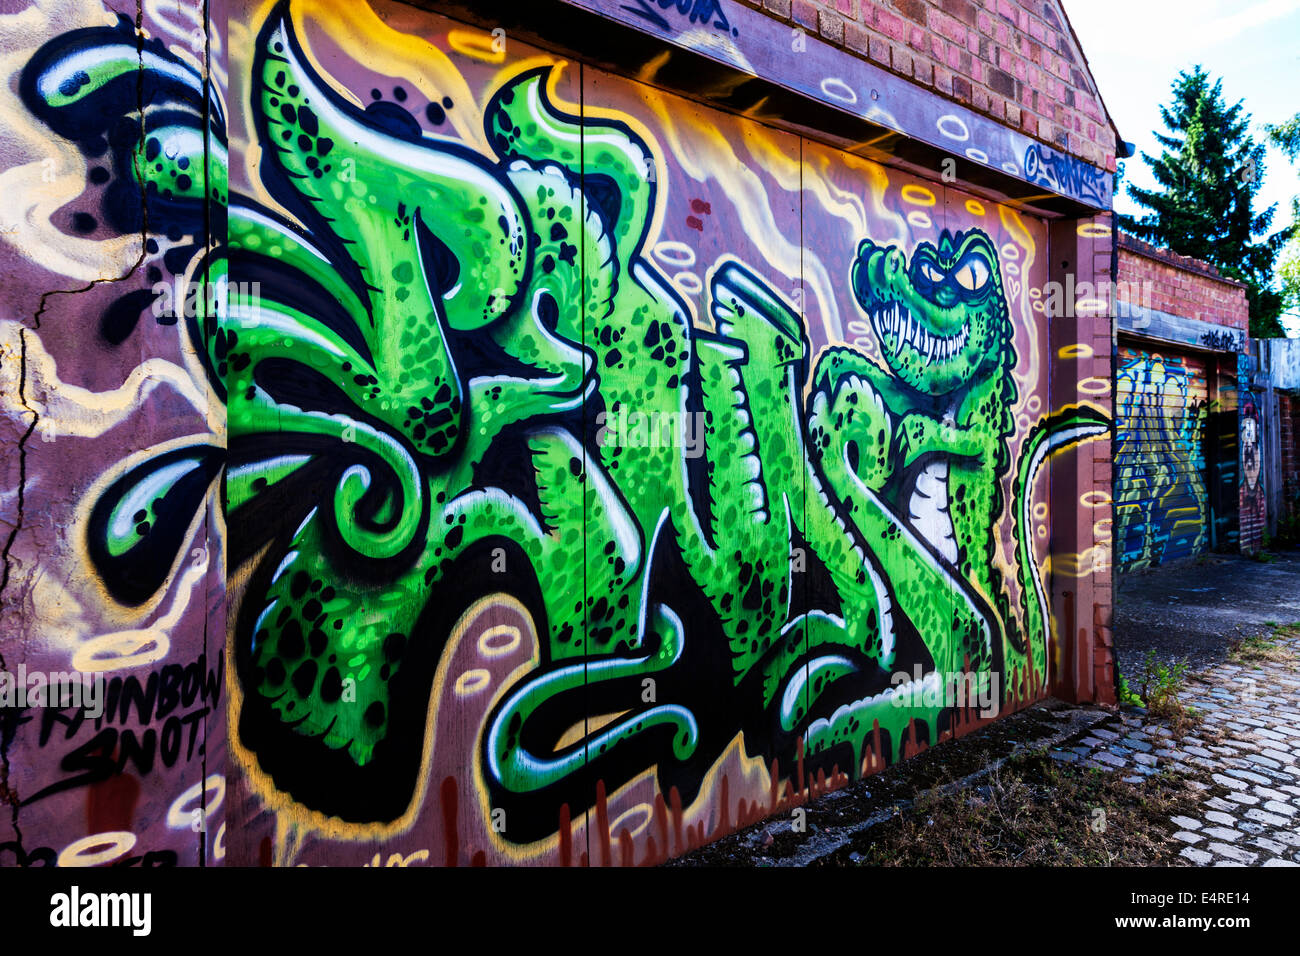 Graffiti On Garage Doors In A Service Road Abington Northampton